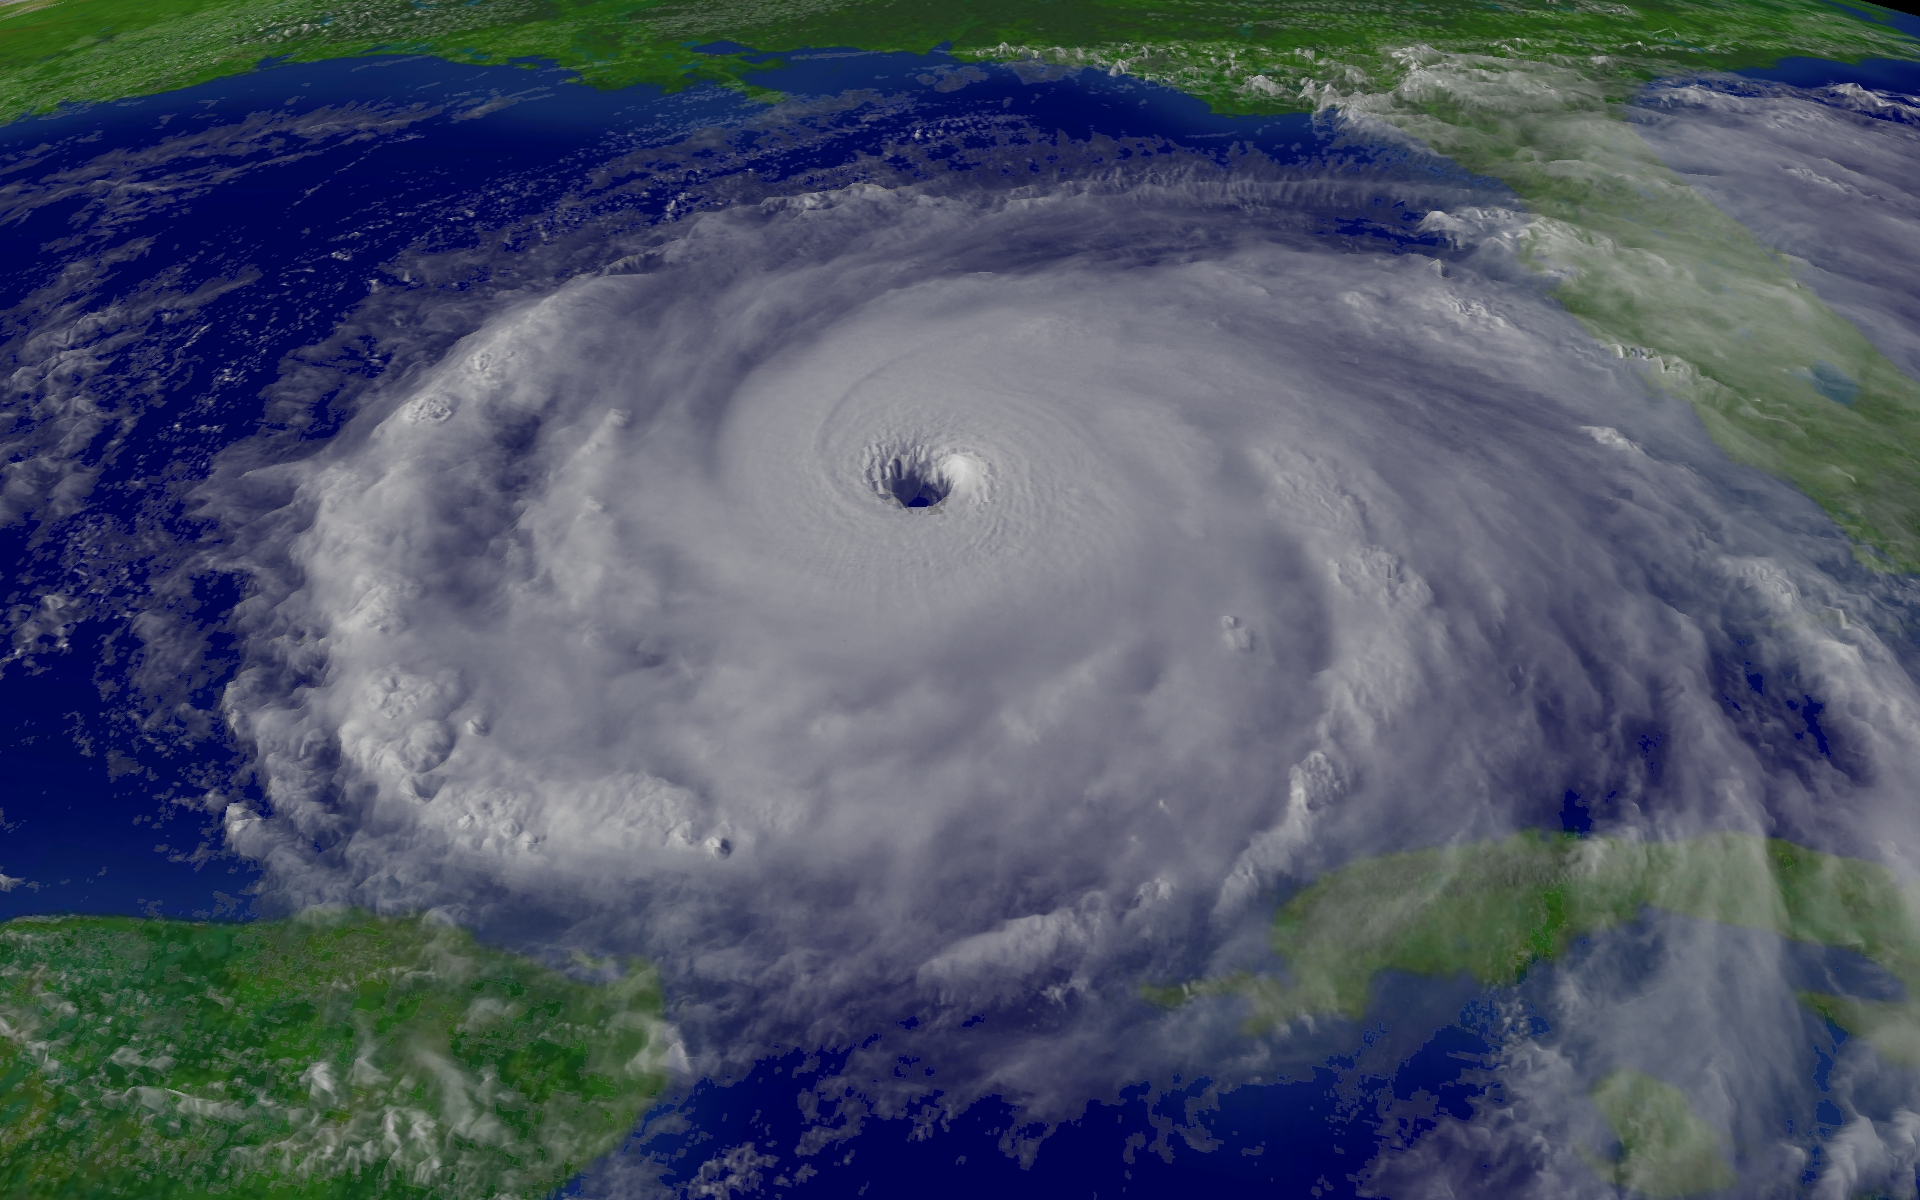 an analysis of the topic of the hurricanes Remote sensing sensors and  prediction of hurricanes  hurricane storm surge and land cover analysis the sea, lake,.